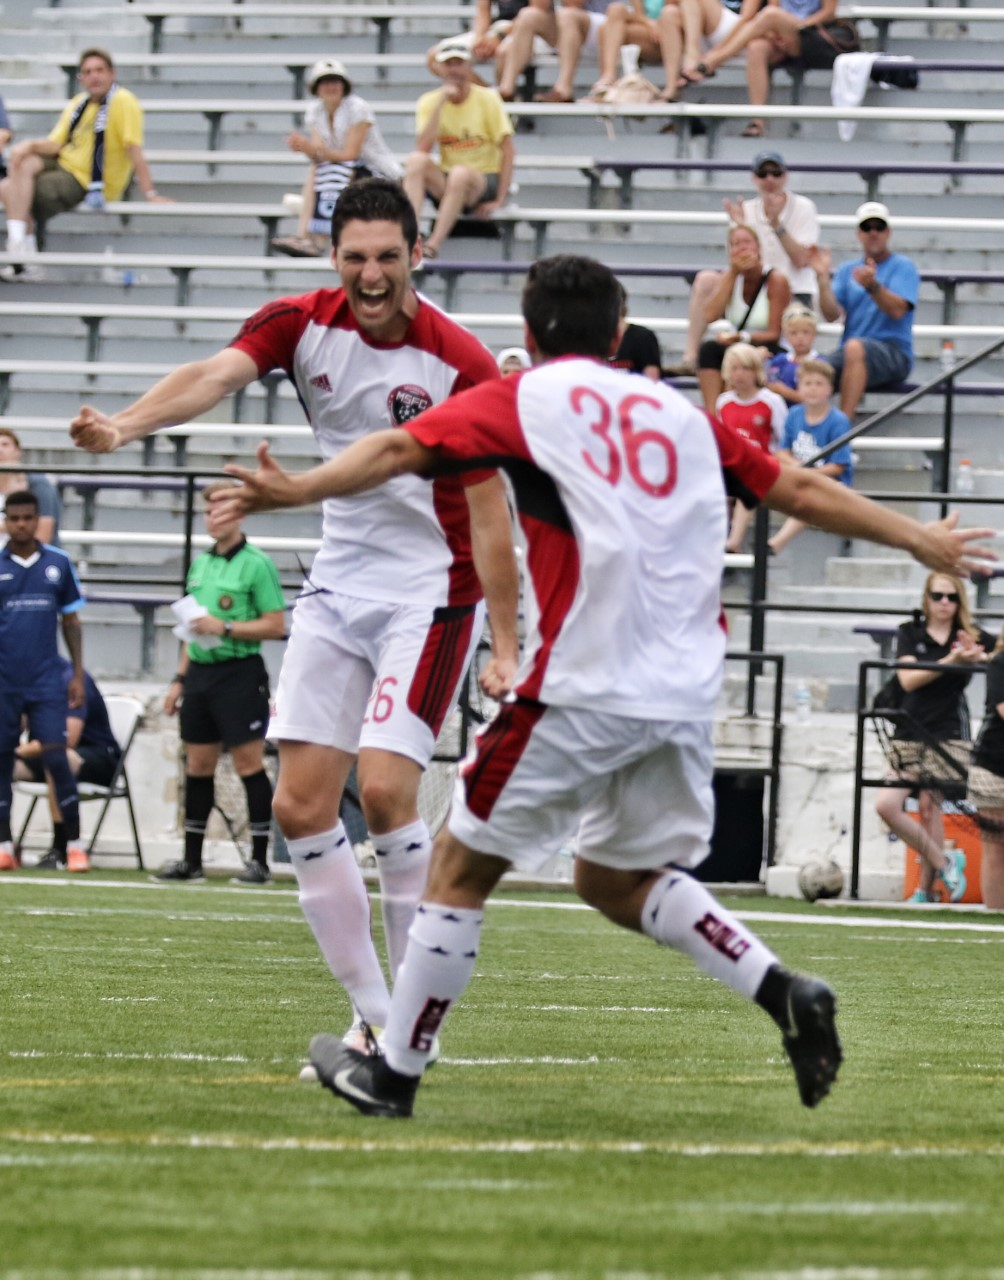 Jon Rubio, Man of the Match and Lone Goal Scorer For Michigan Stars FC 1-1 Tie  Photo Credit: Joe Judge